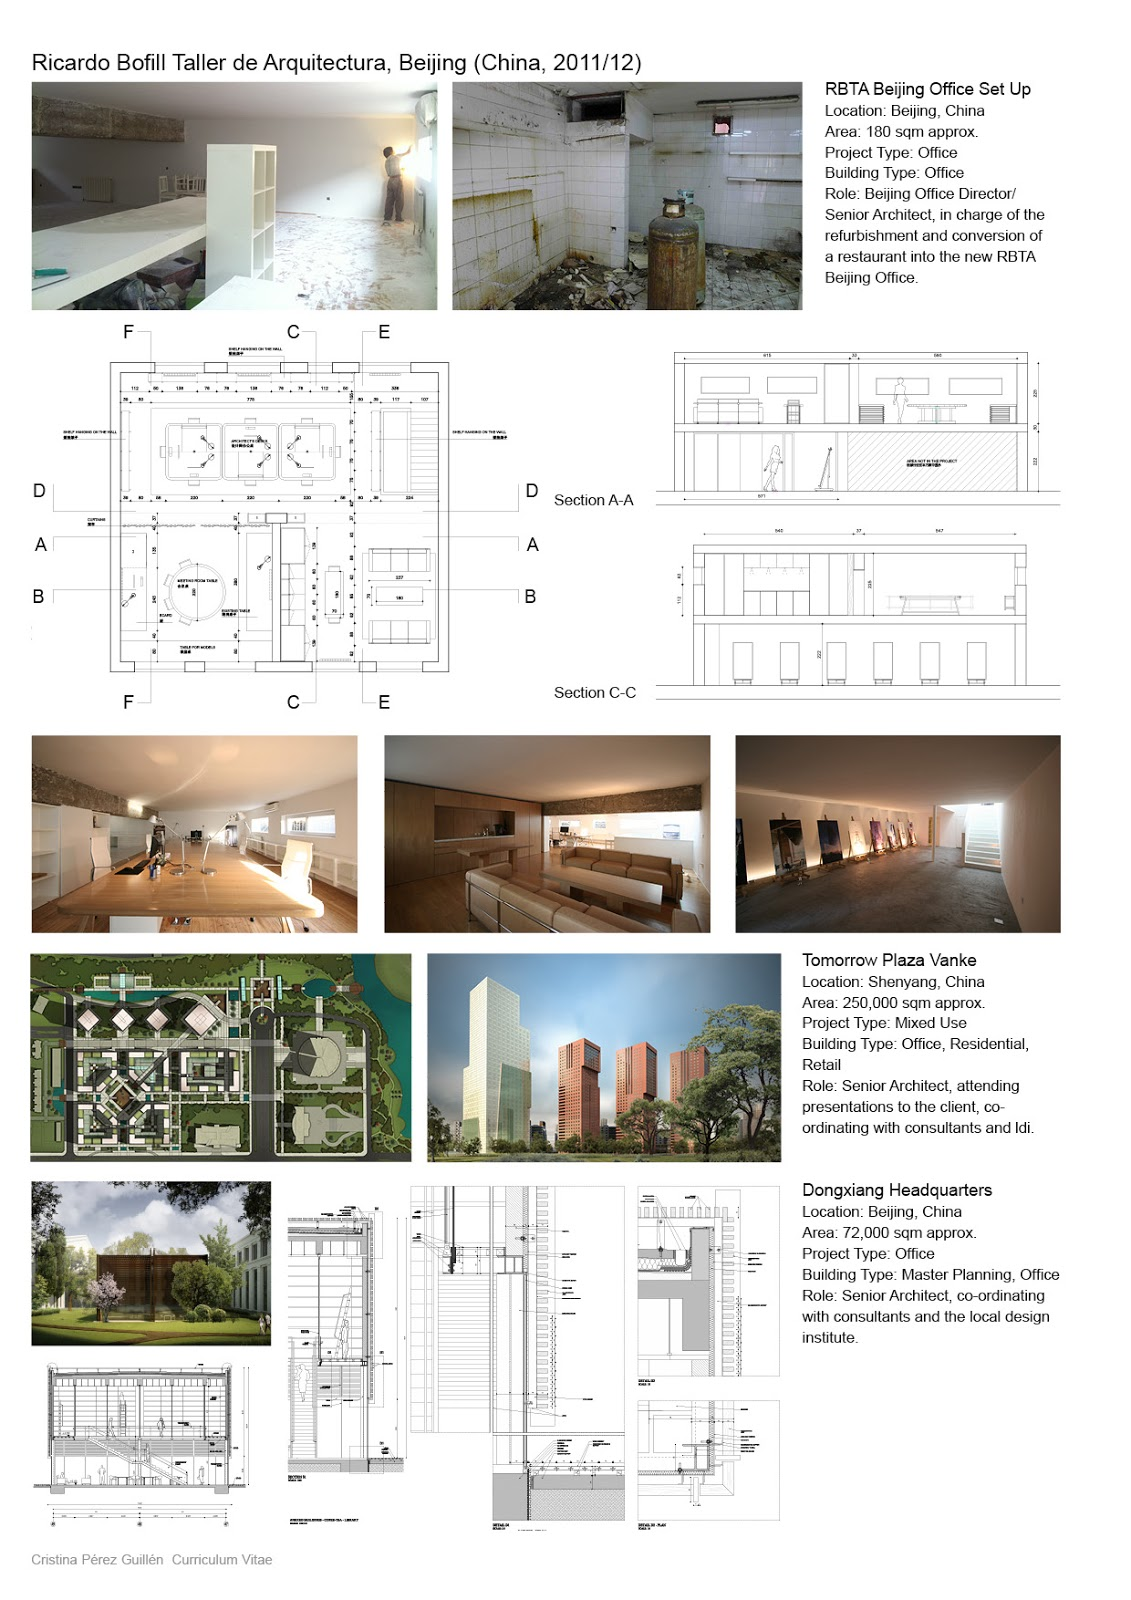 One team architects cristina p rez guill n cv - Cristina guillen ...